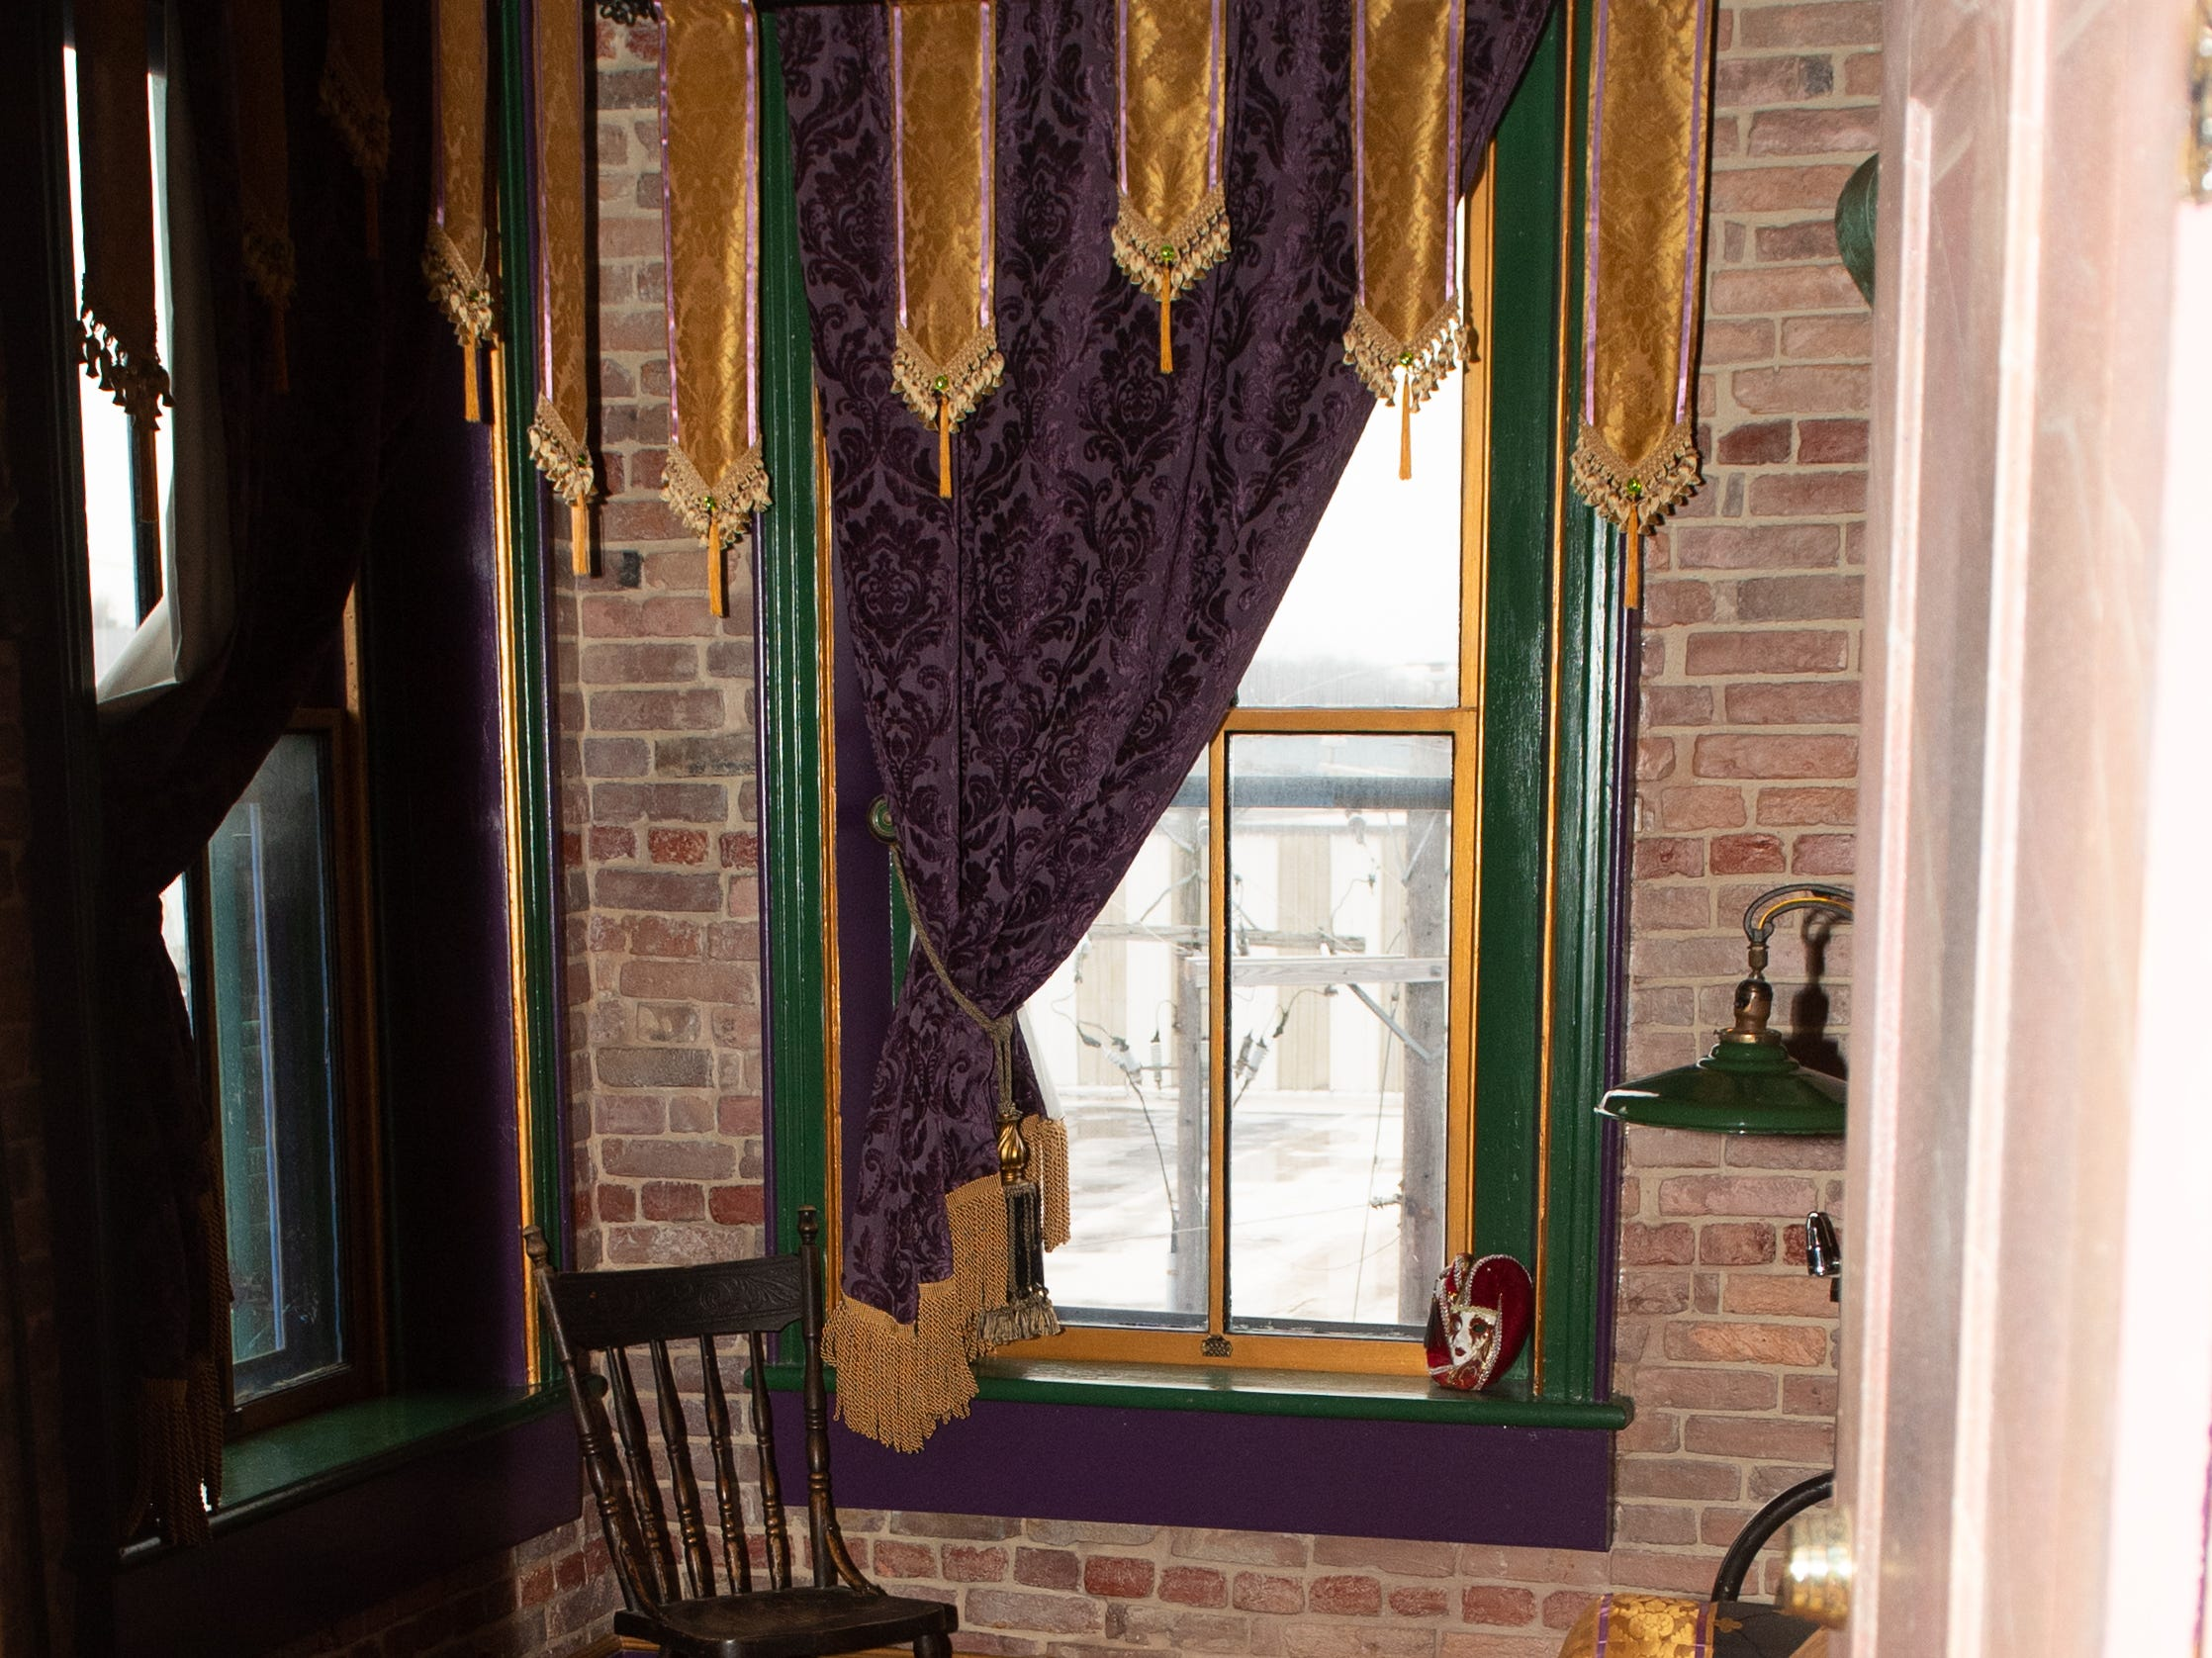 """Inside the 'Madri Gras' room at the Victorian hotel adjacent to Bube's Brewery in Mt. Joy. The 8 speciality rooms vary between theme including a """"Japanese massage"""" room and a """"Tiki"""" room, February 22, 2019."""